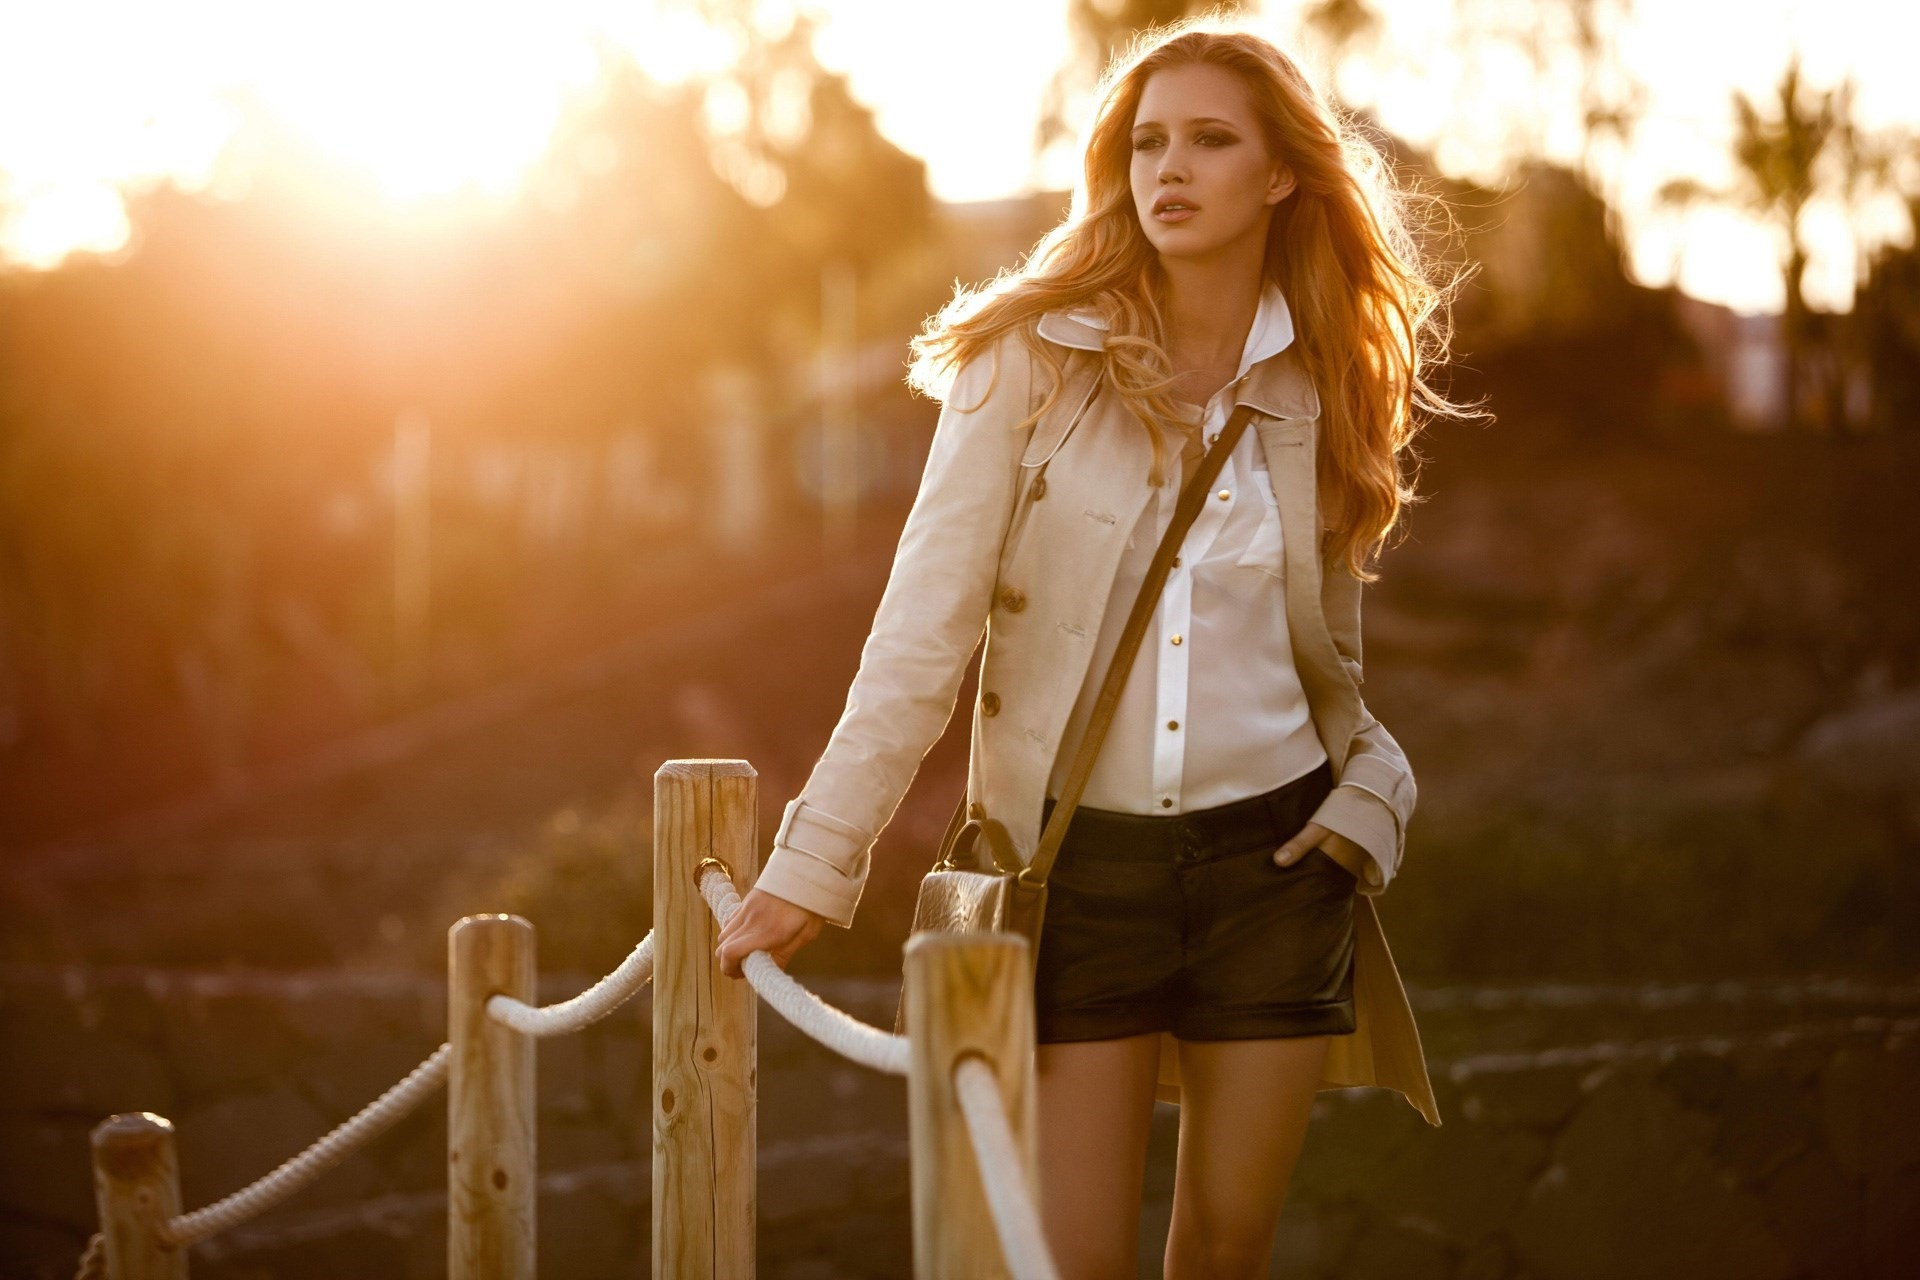 Fashion-Blonde-Girl-at-Sunlight-HD-Wallpaper